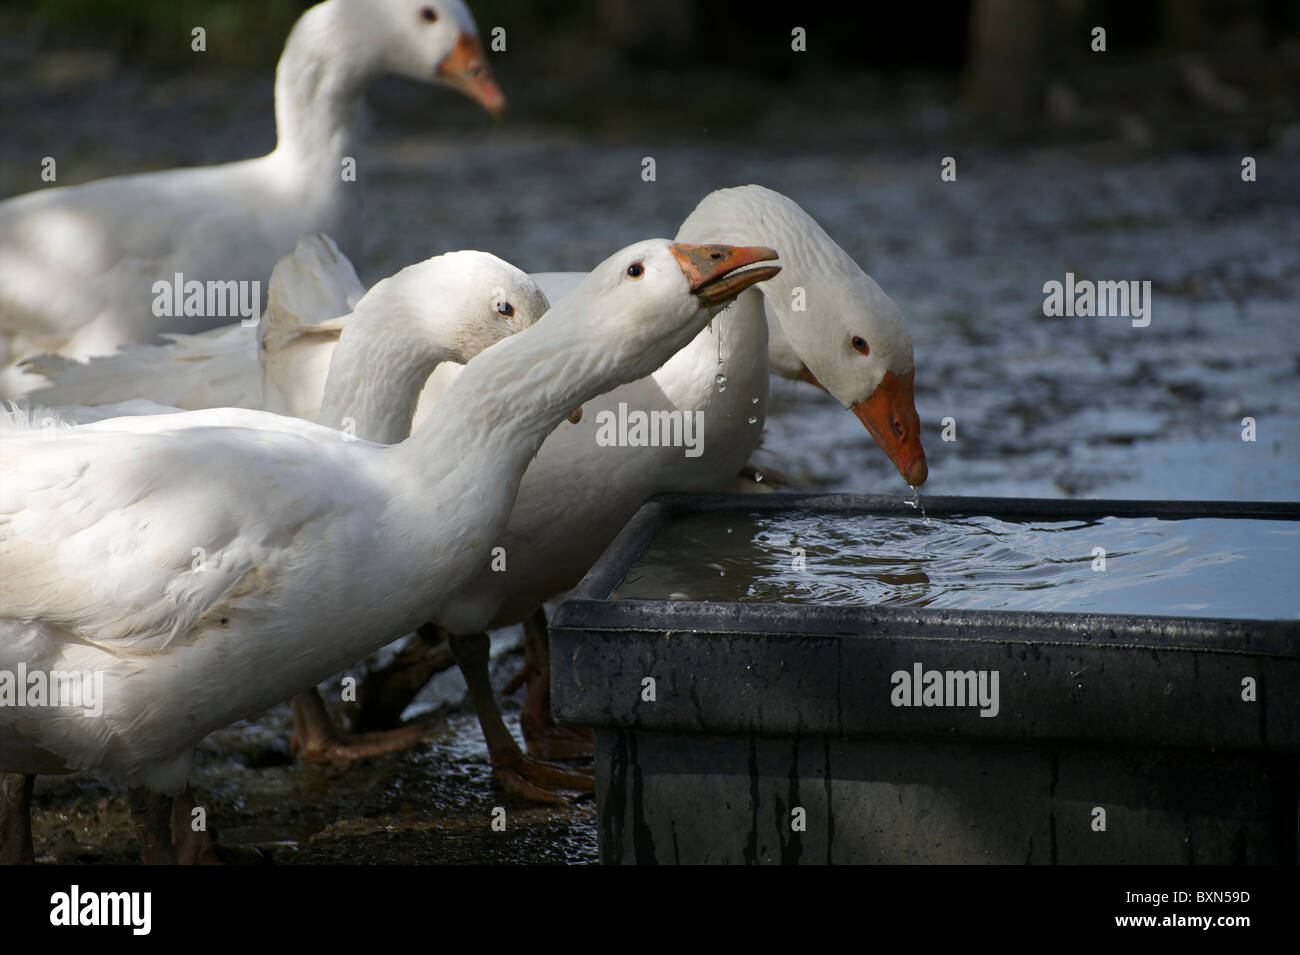 Organic free range Embden geese drinking from a water container on a sunny August afternoon in Devon. - Stock Image